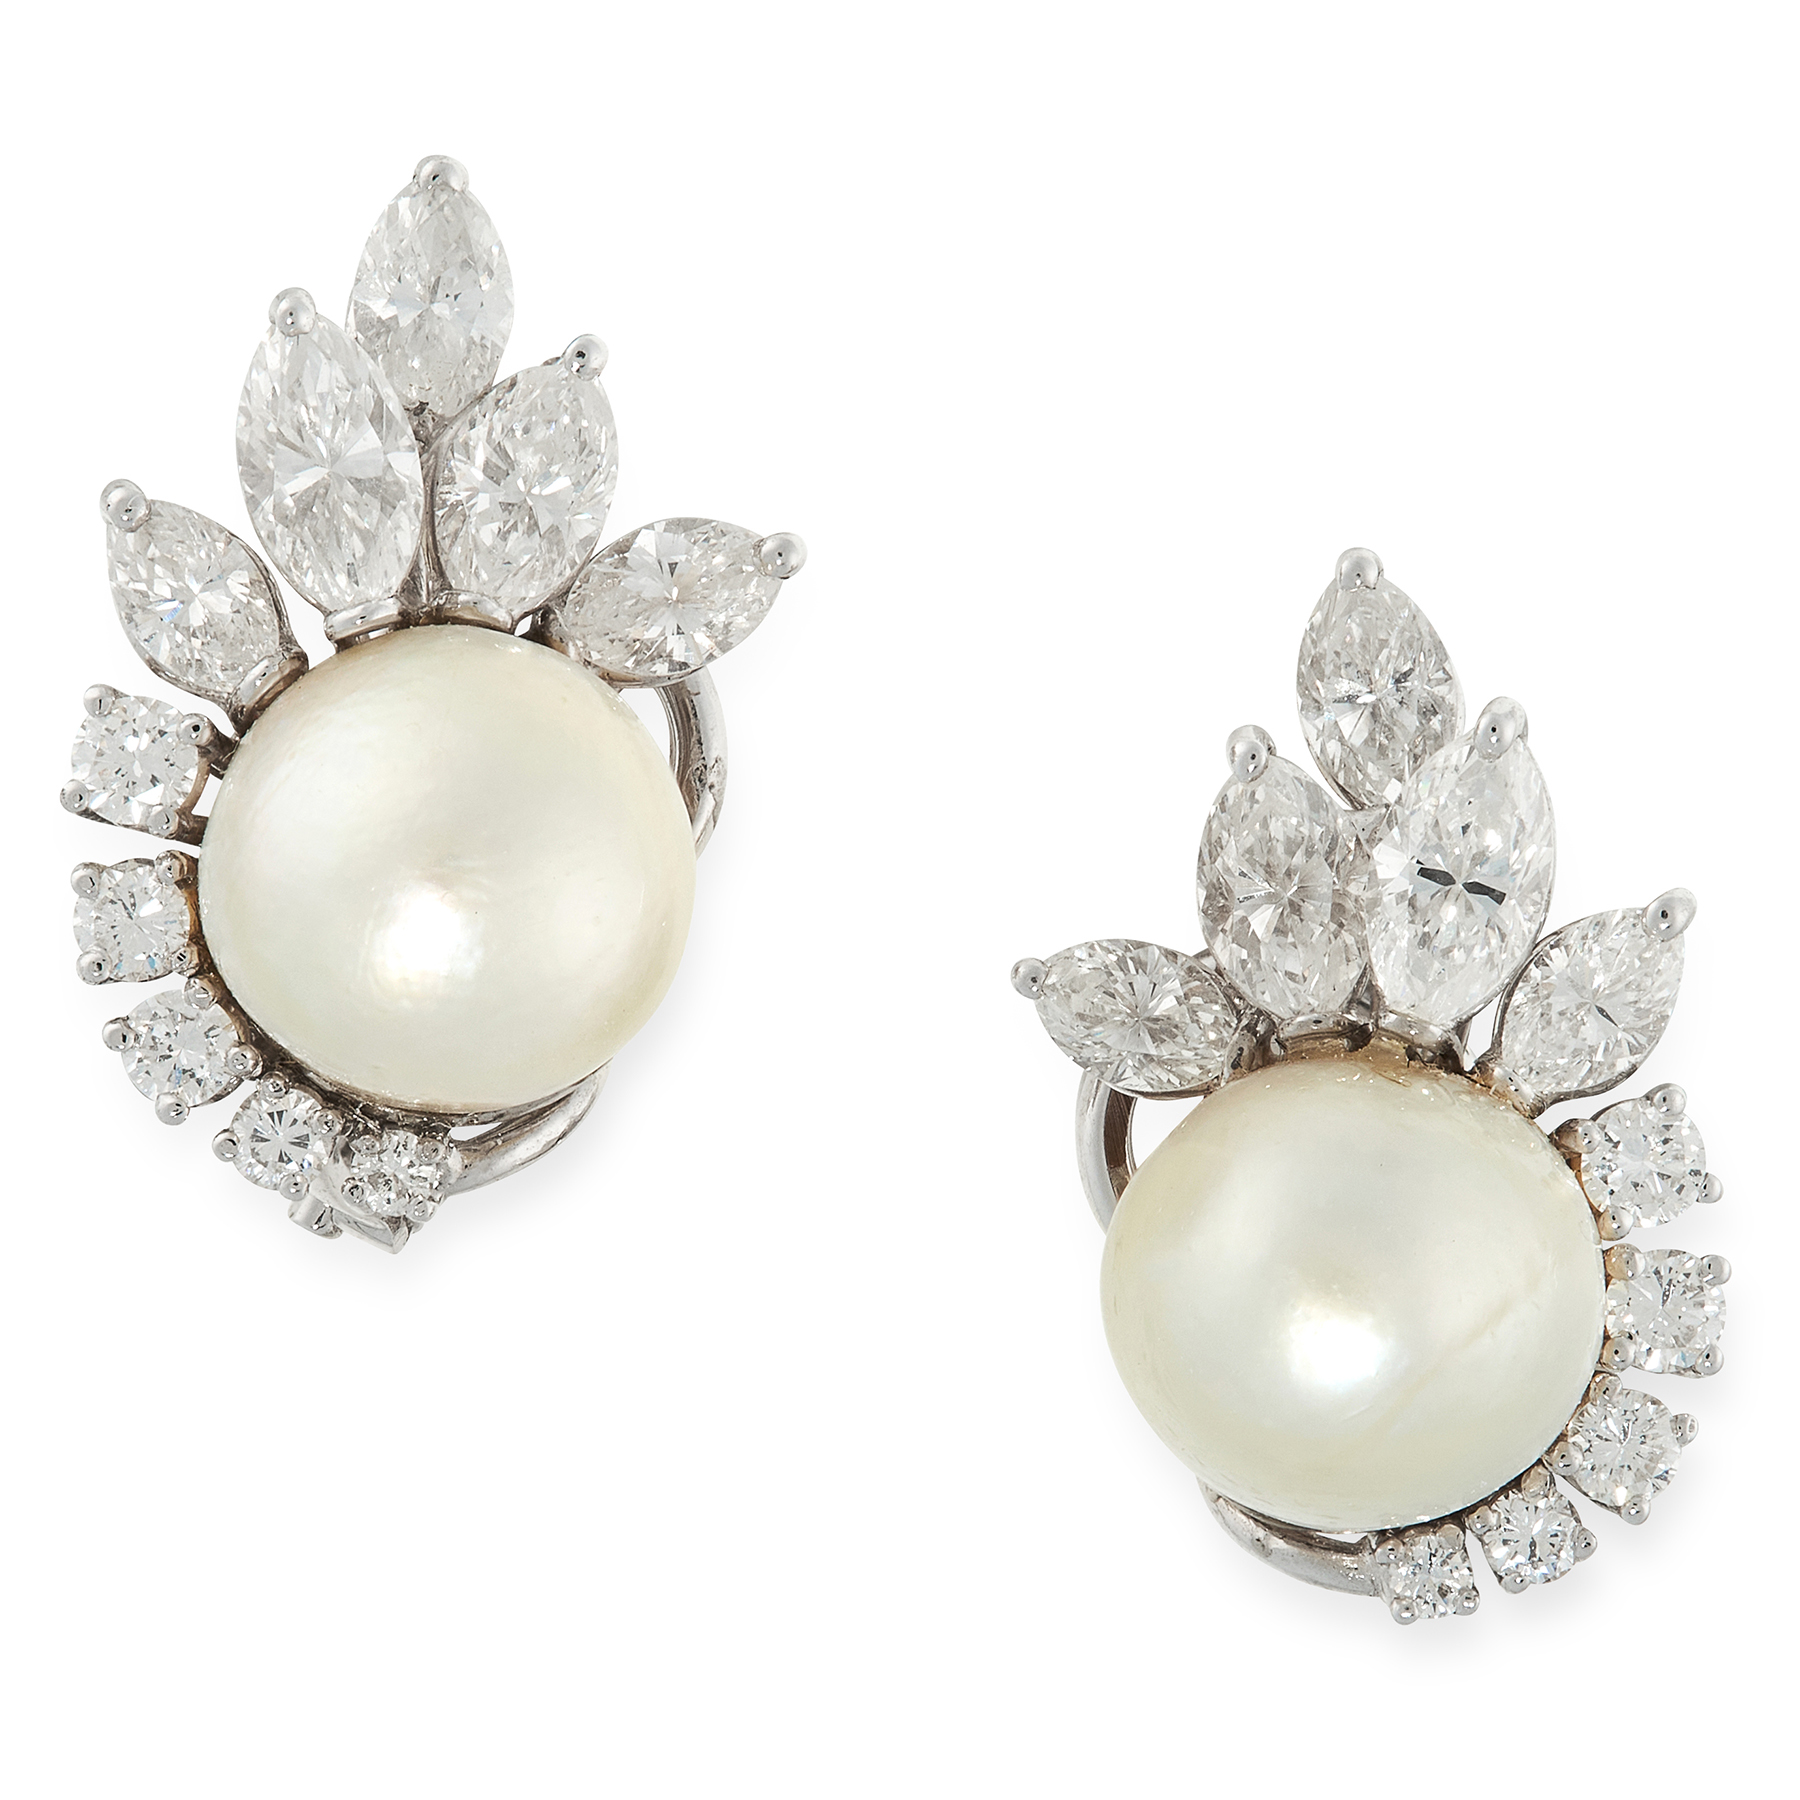 A PAIR OF NATURAL PEARL AND DIAMOND CLIP EARRINGS in white gold, each set with a pearl of 9.8mm